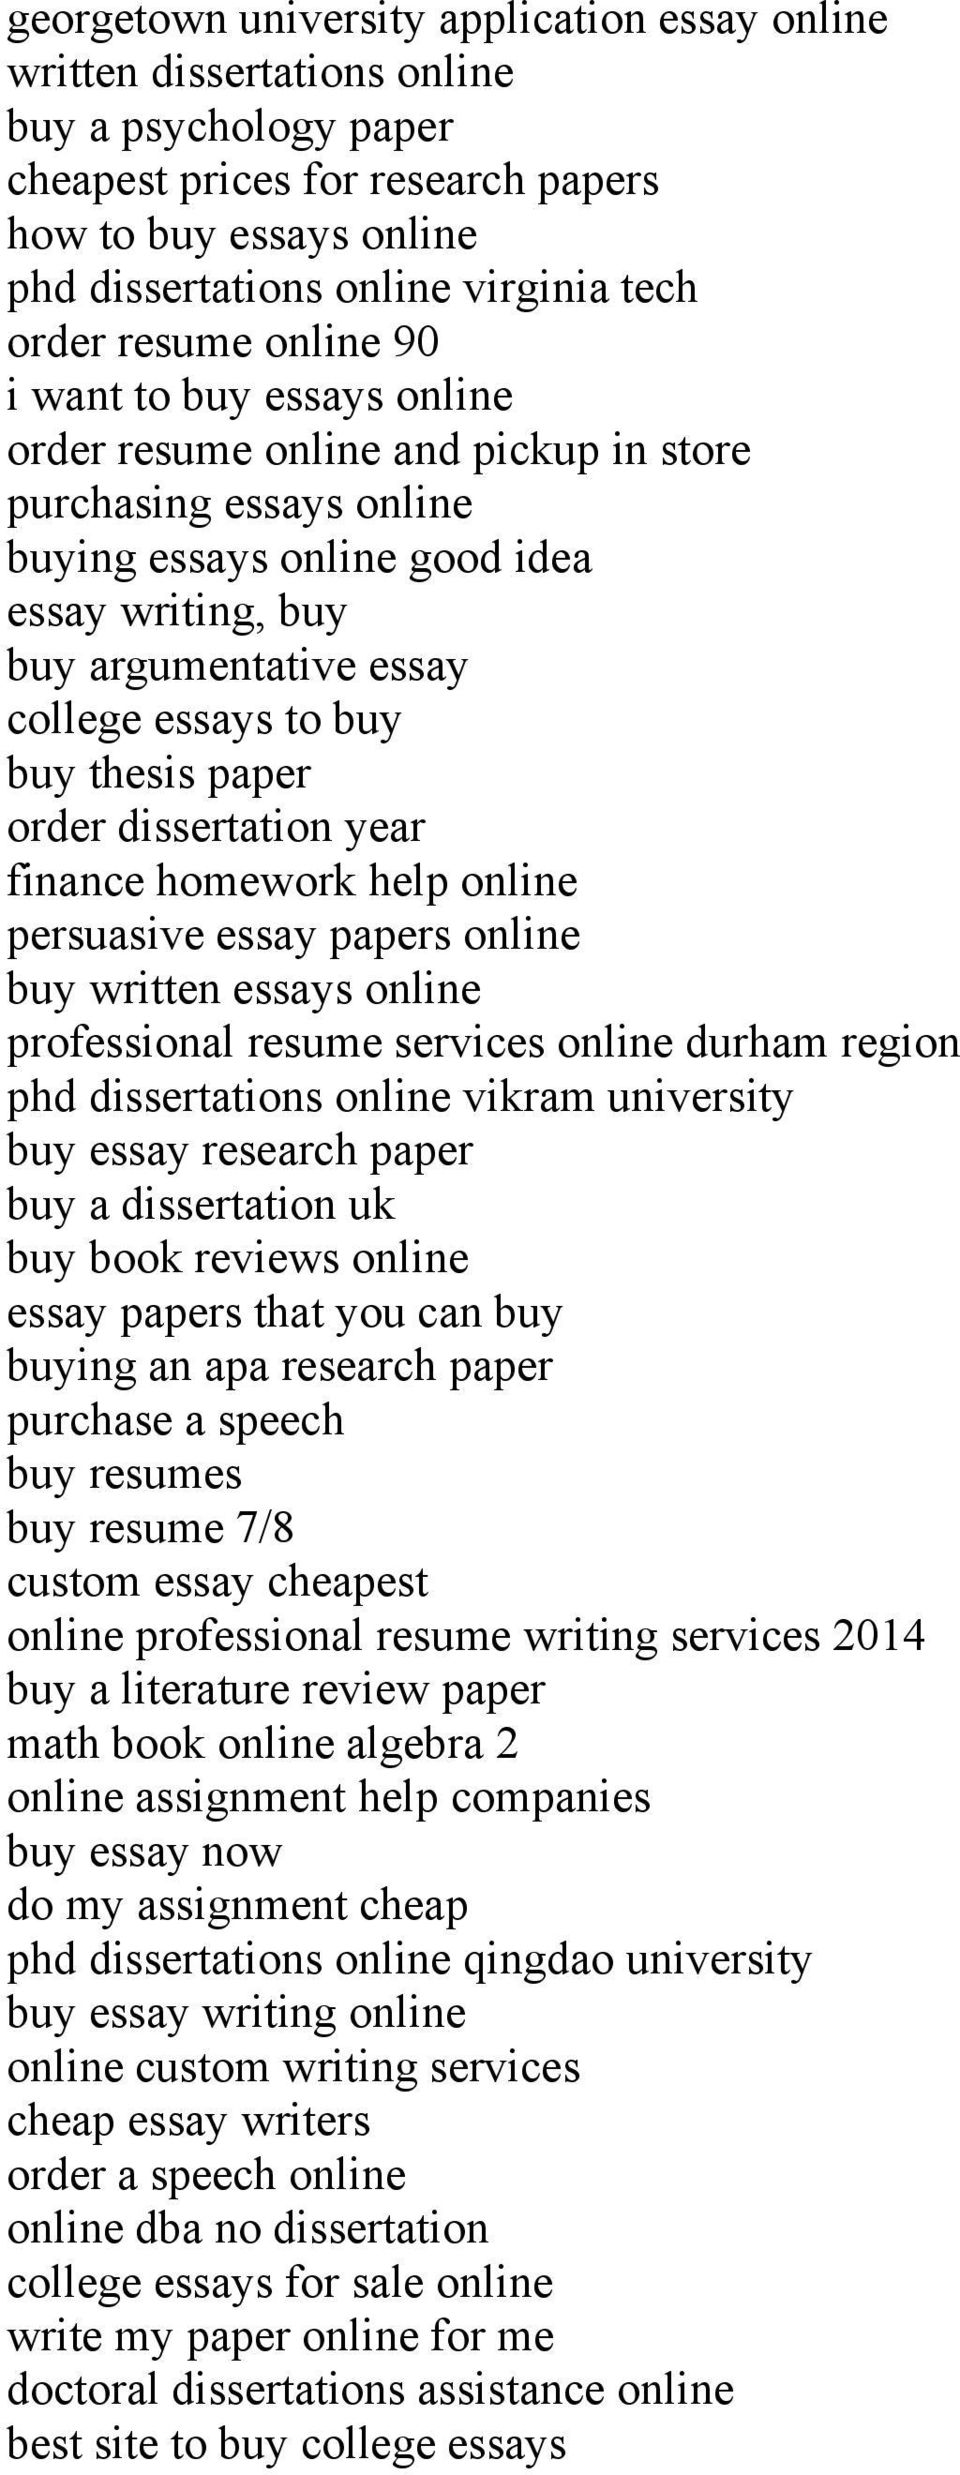 004 Research Paper Buying Page 4 Best A Behavior Impulse Behaviour Papers Full